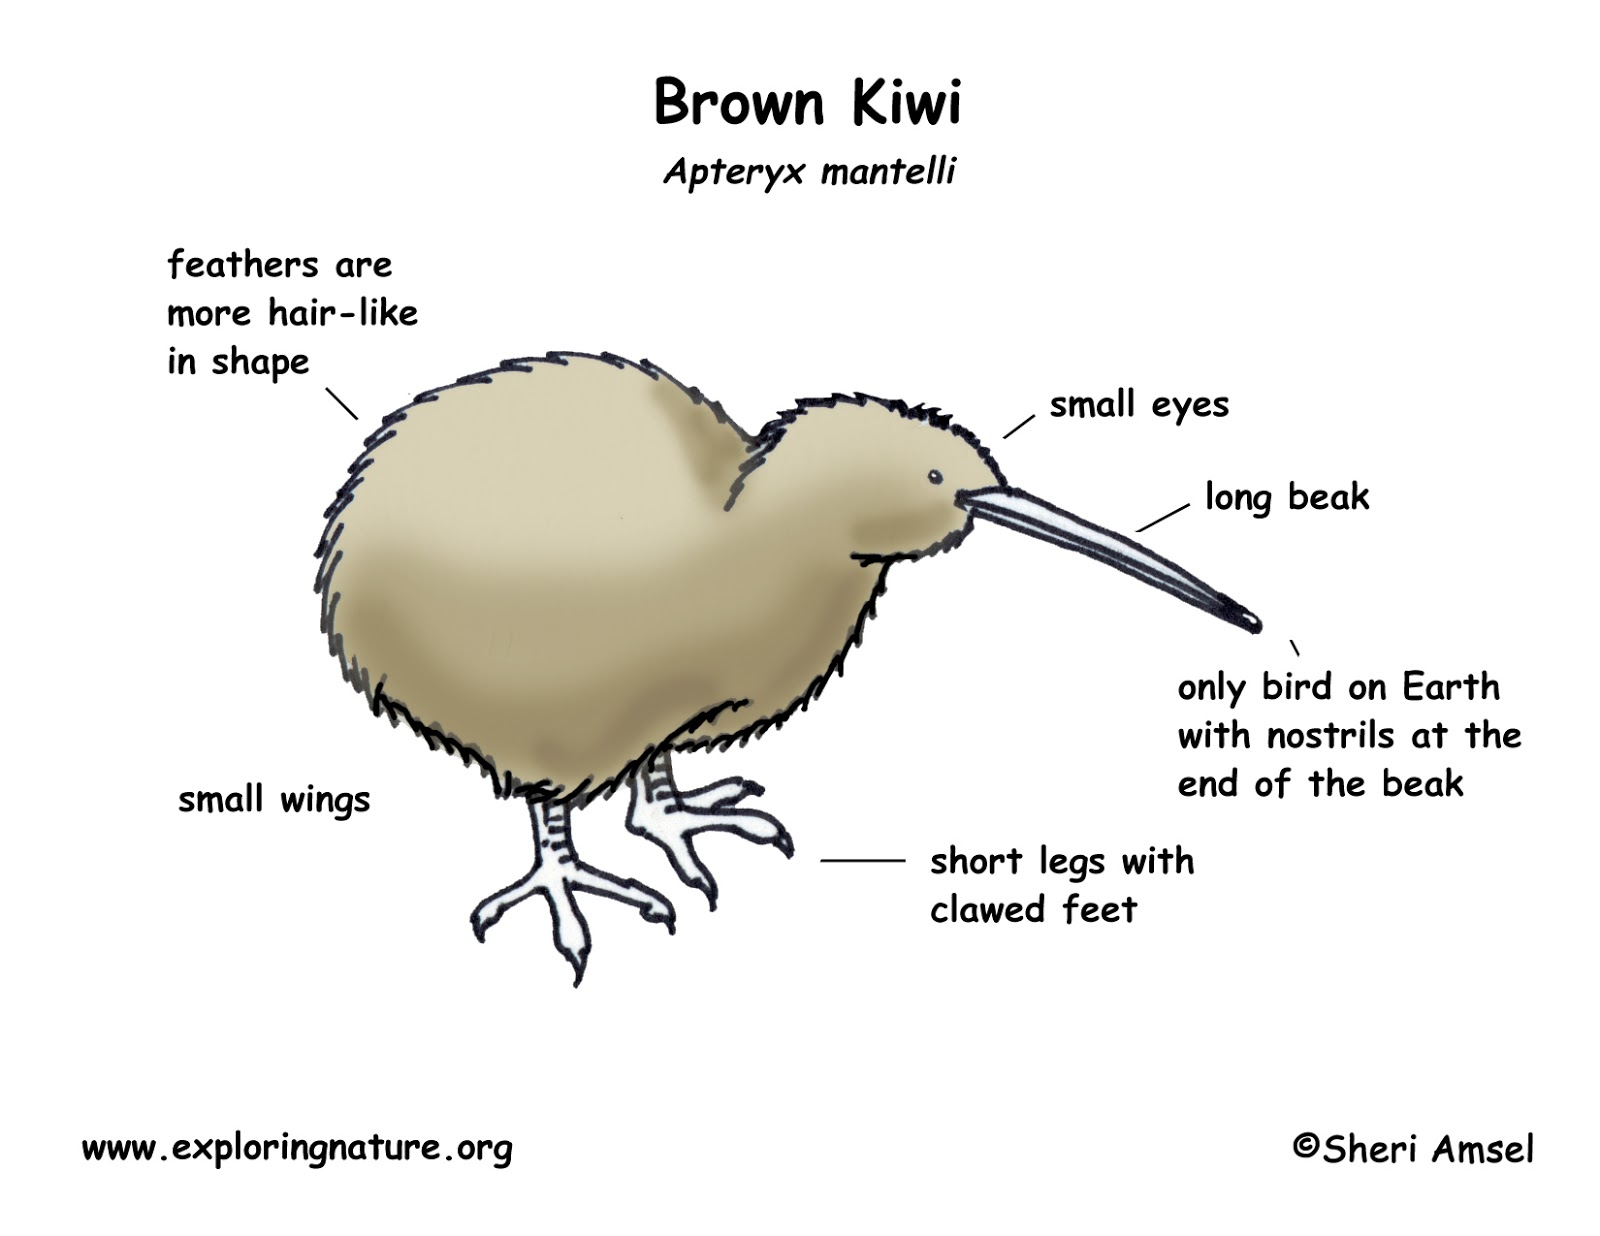 avian anatomy diagram labeled wiring diagrams for multiple wall outlets romahapa junior room what is a kiwi